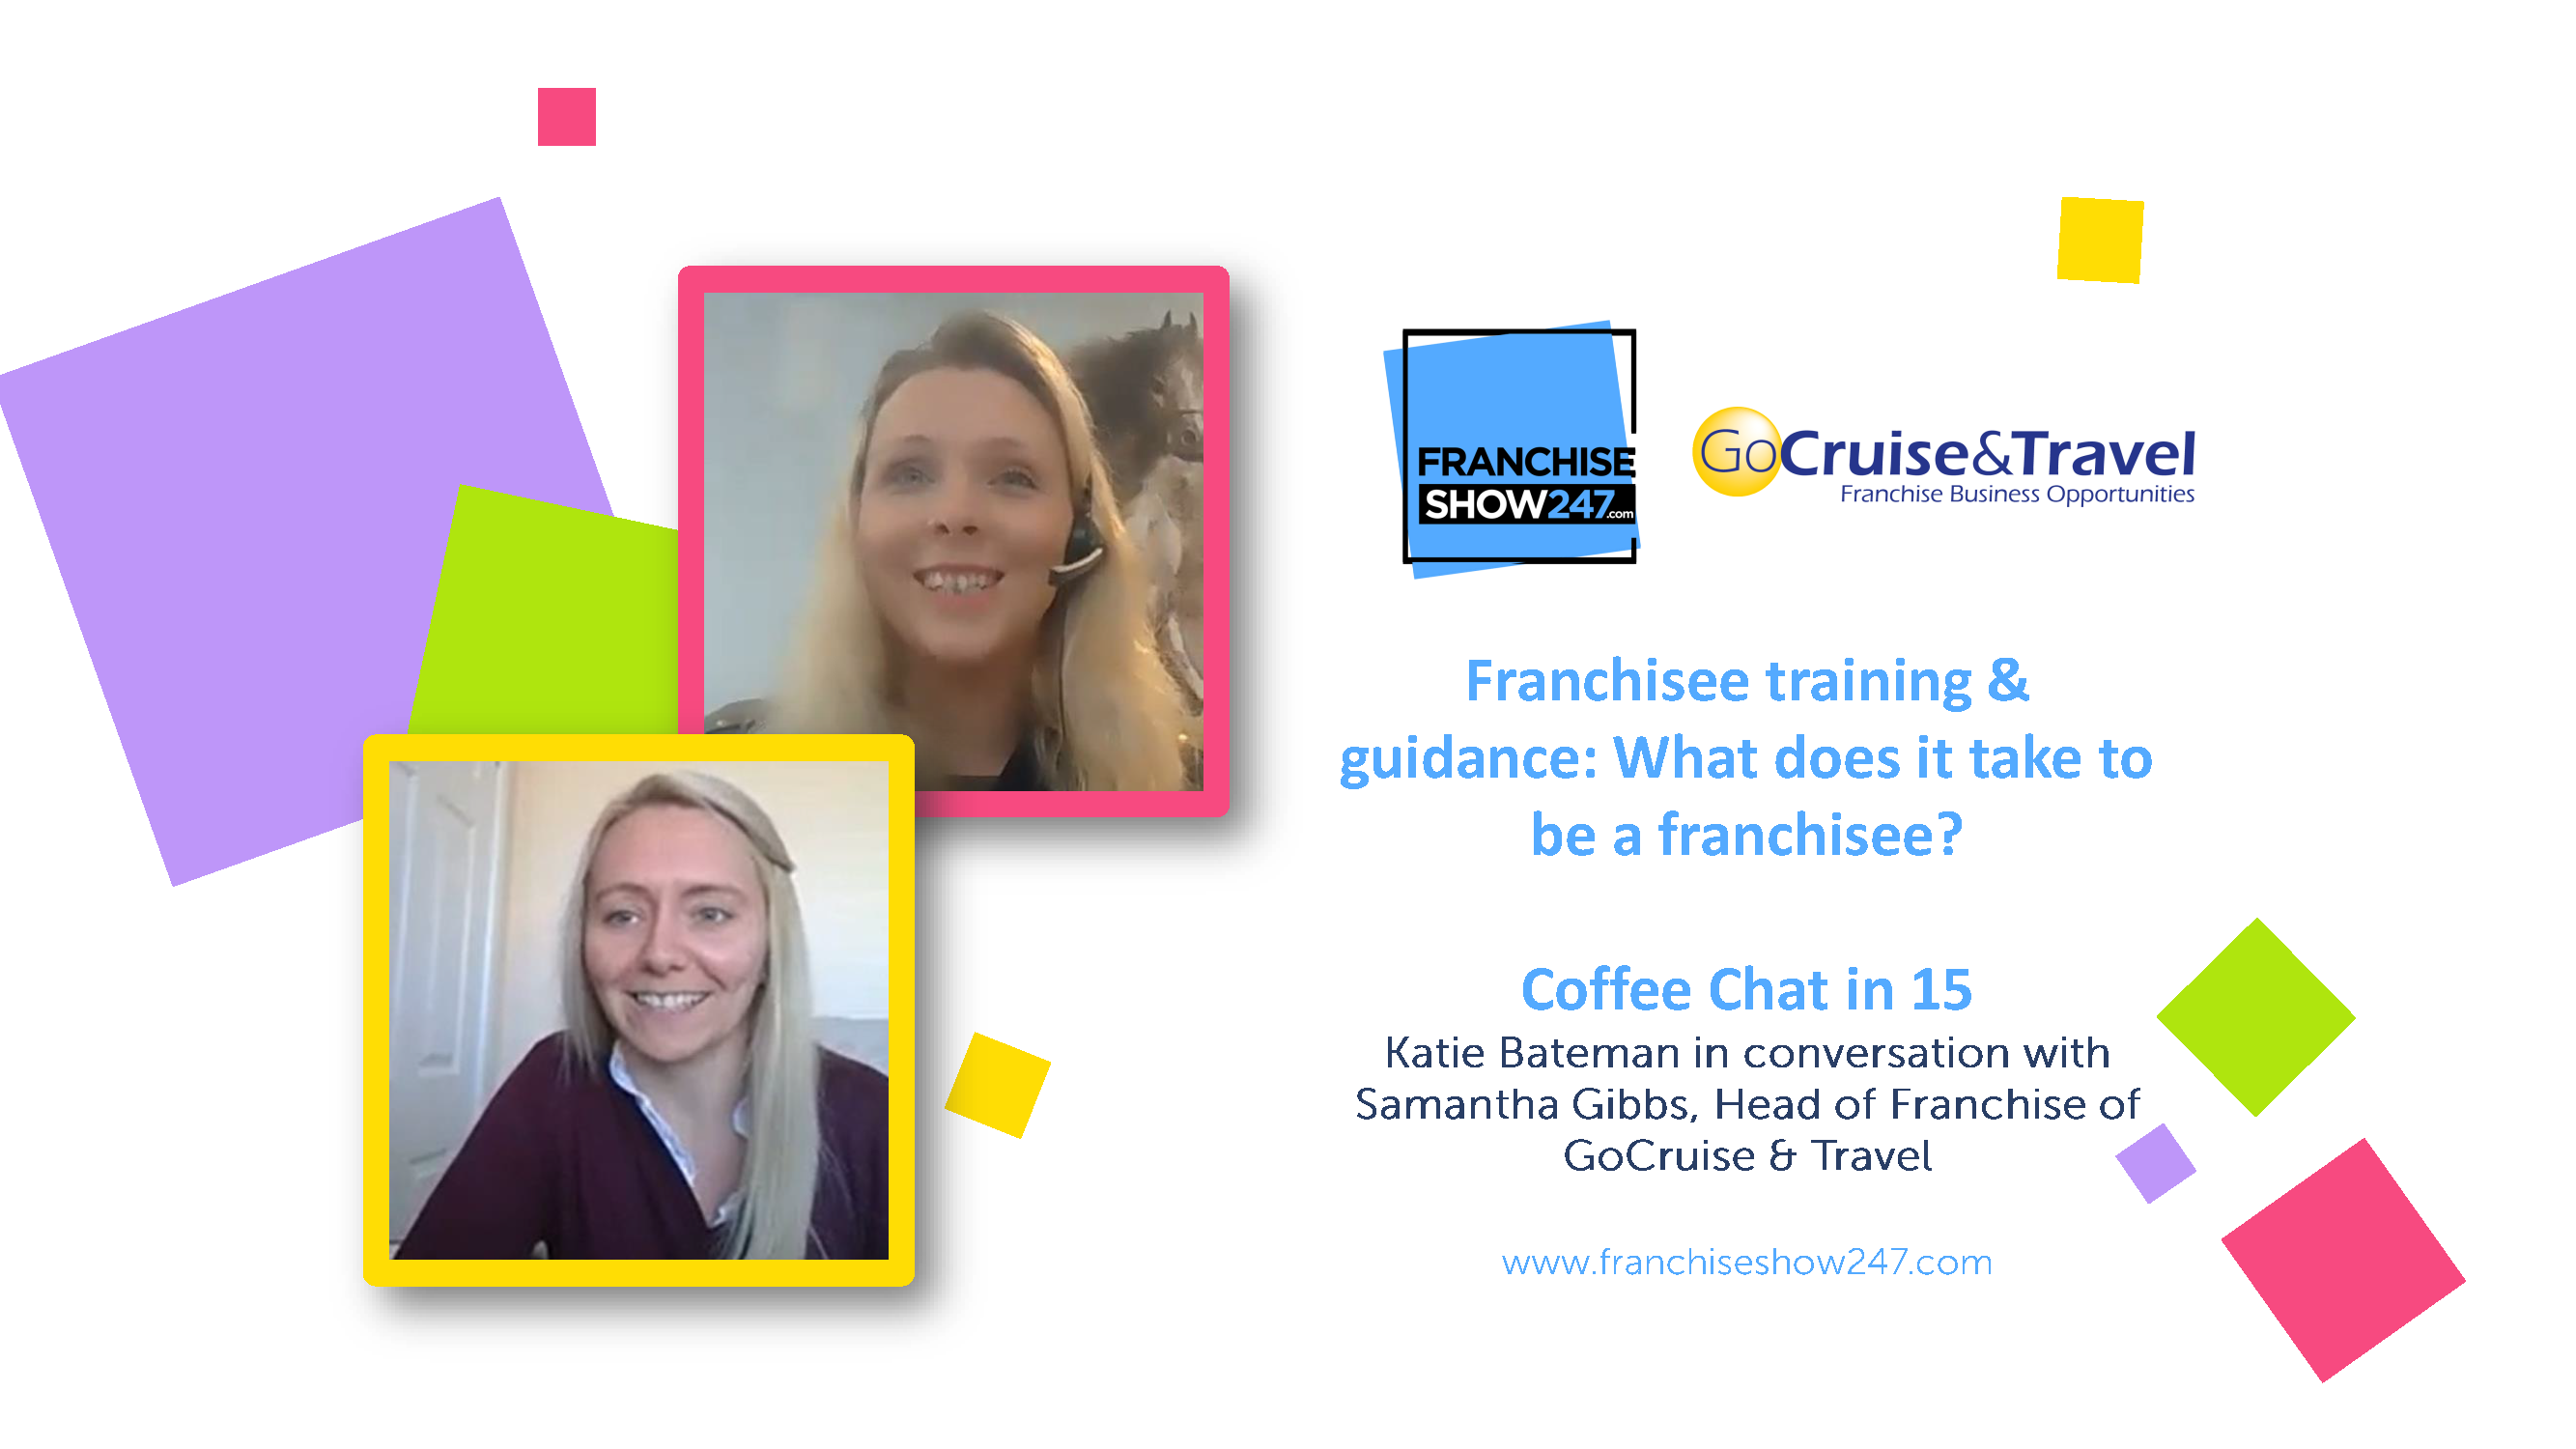 Franchisee training & guidance: What does it take to be a franchisee?